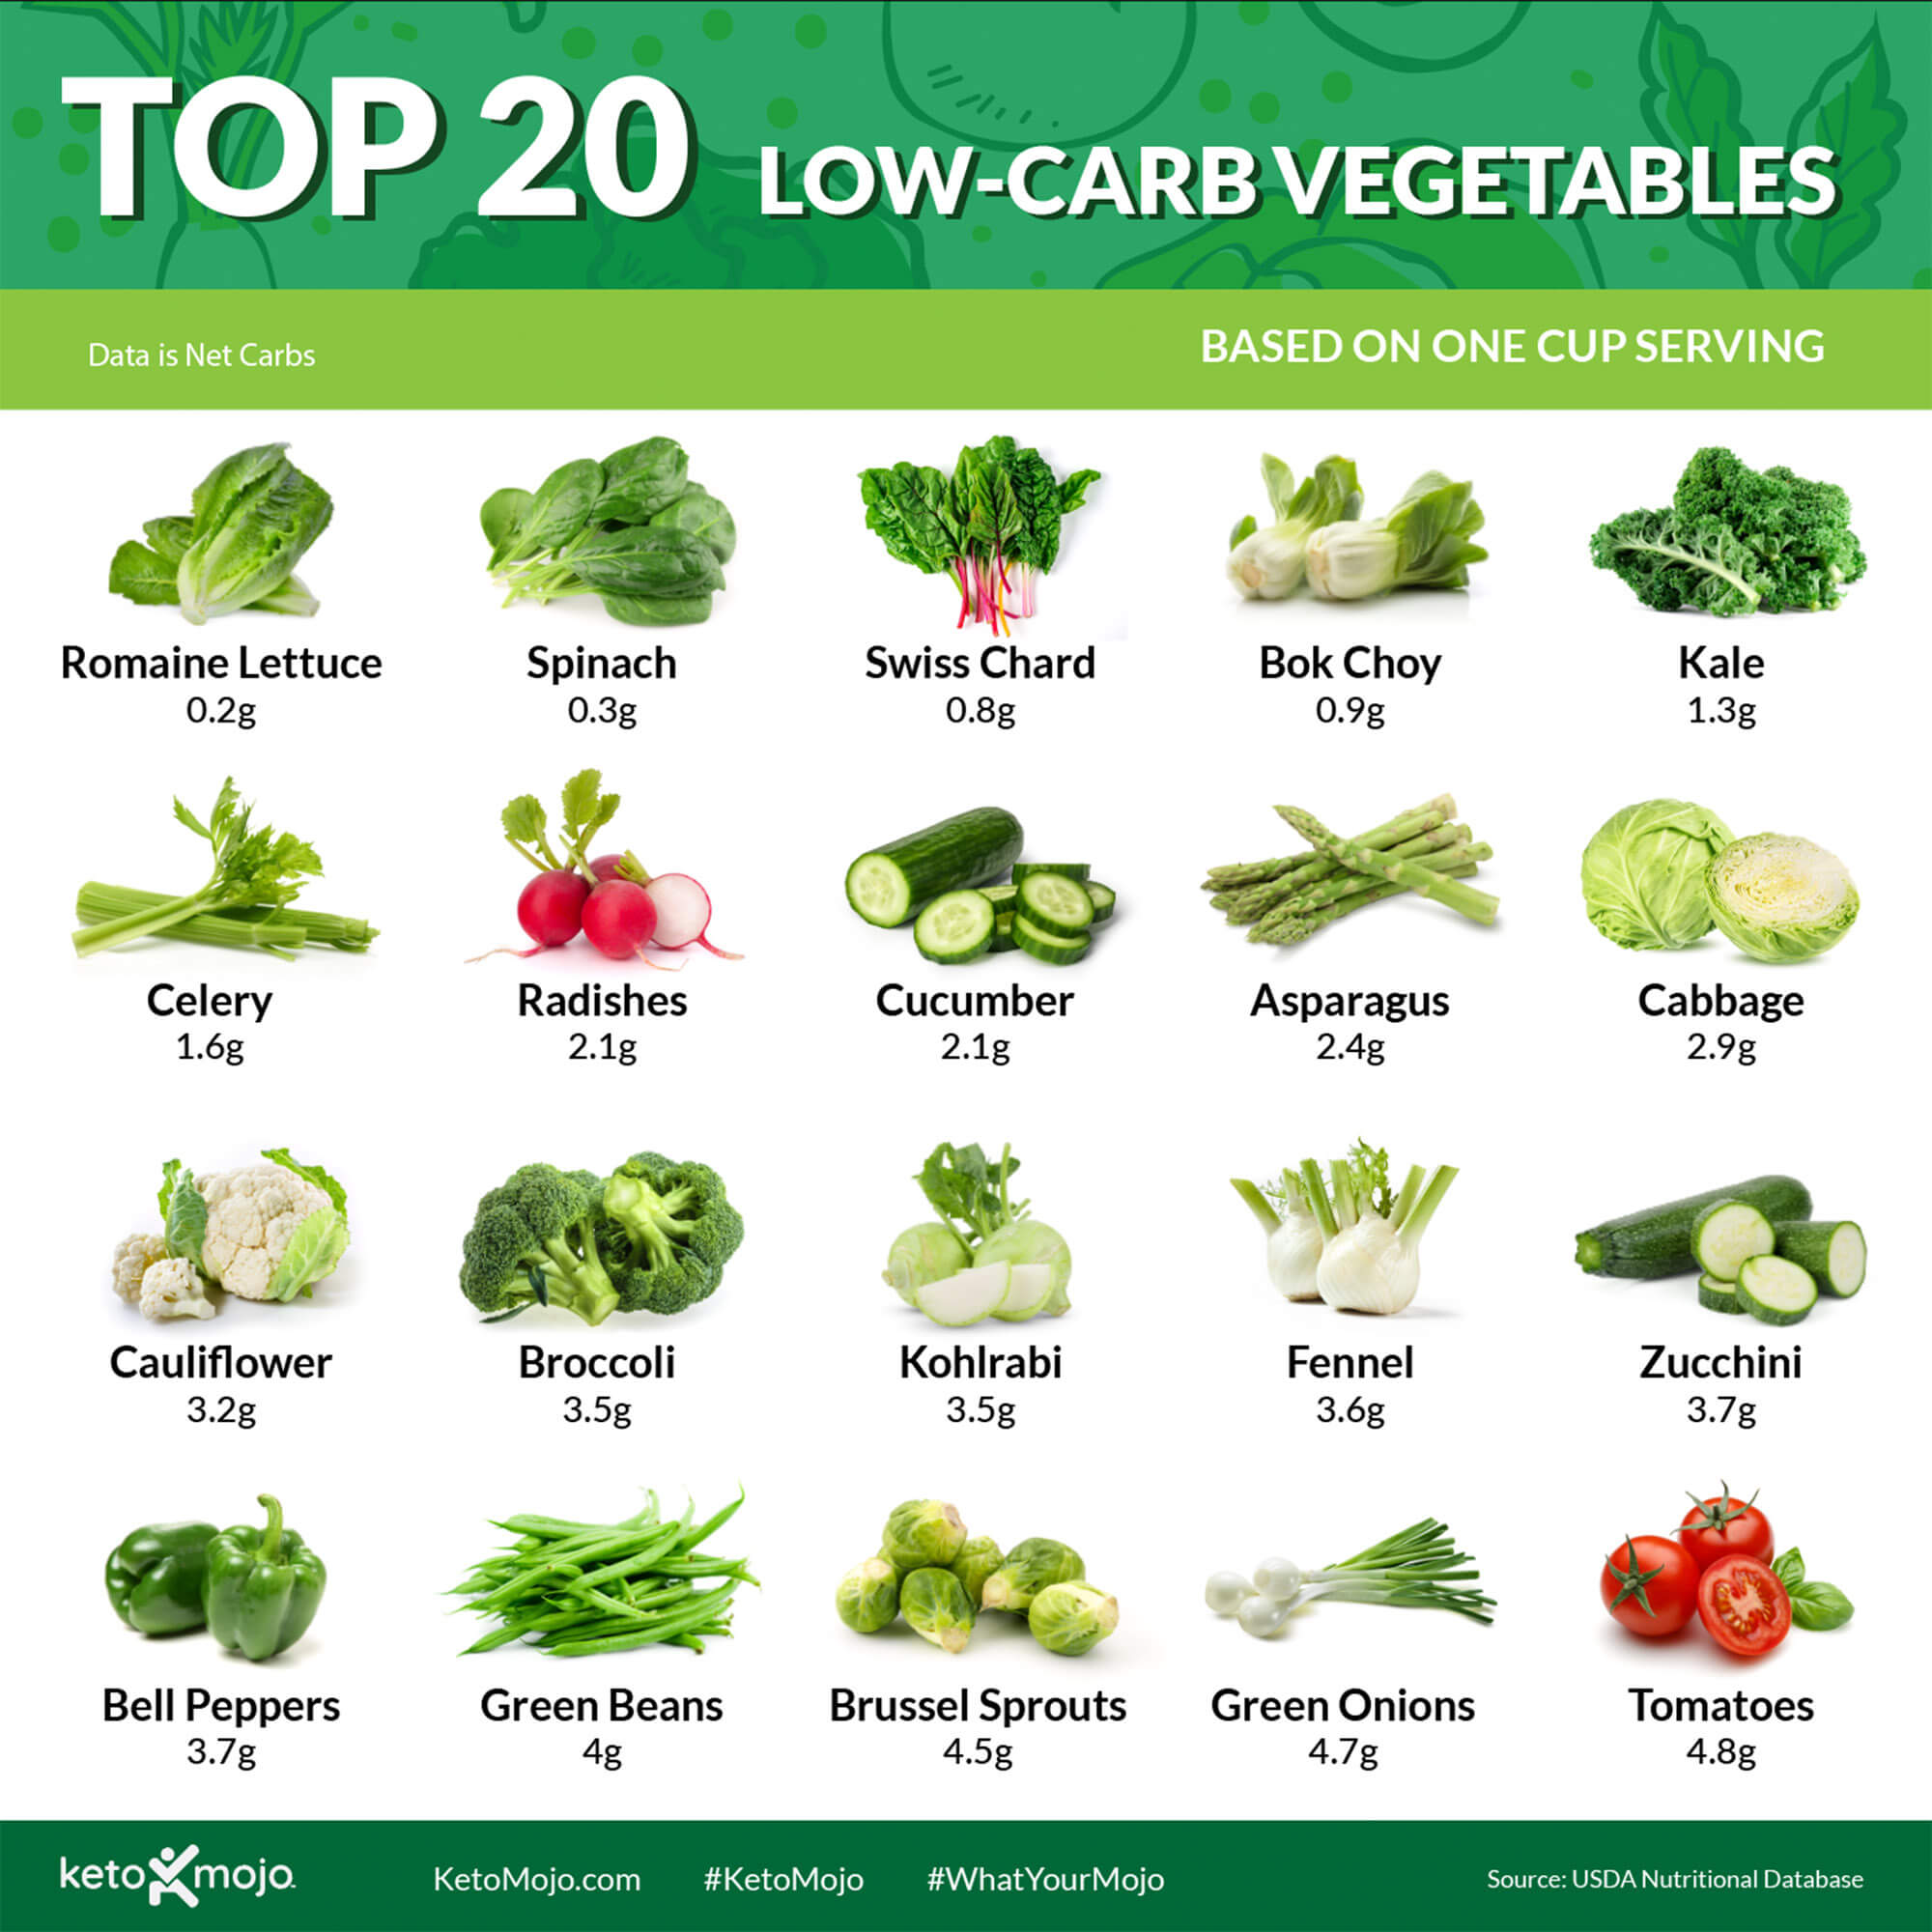 Keto-Mojo top 20 vegetables